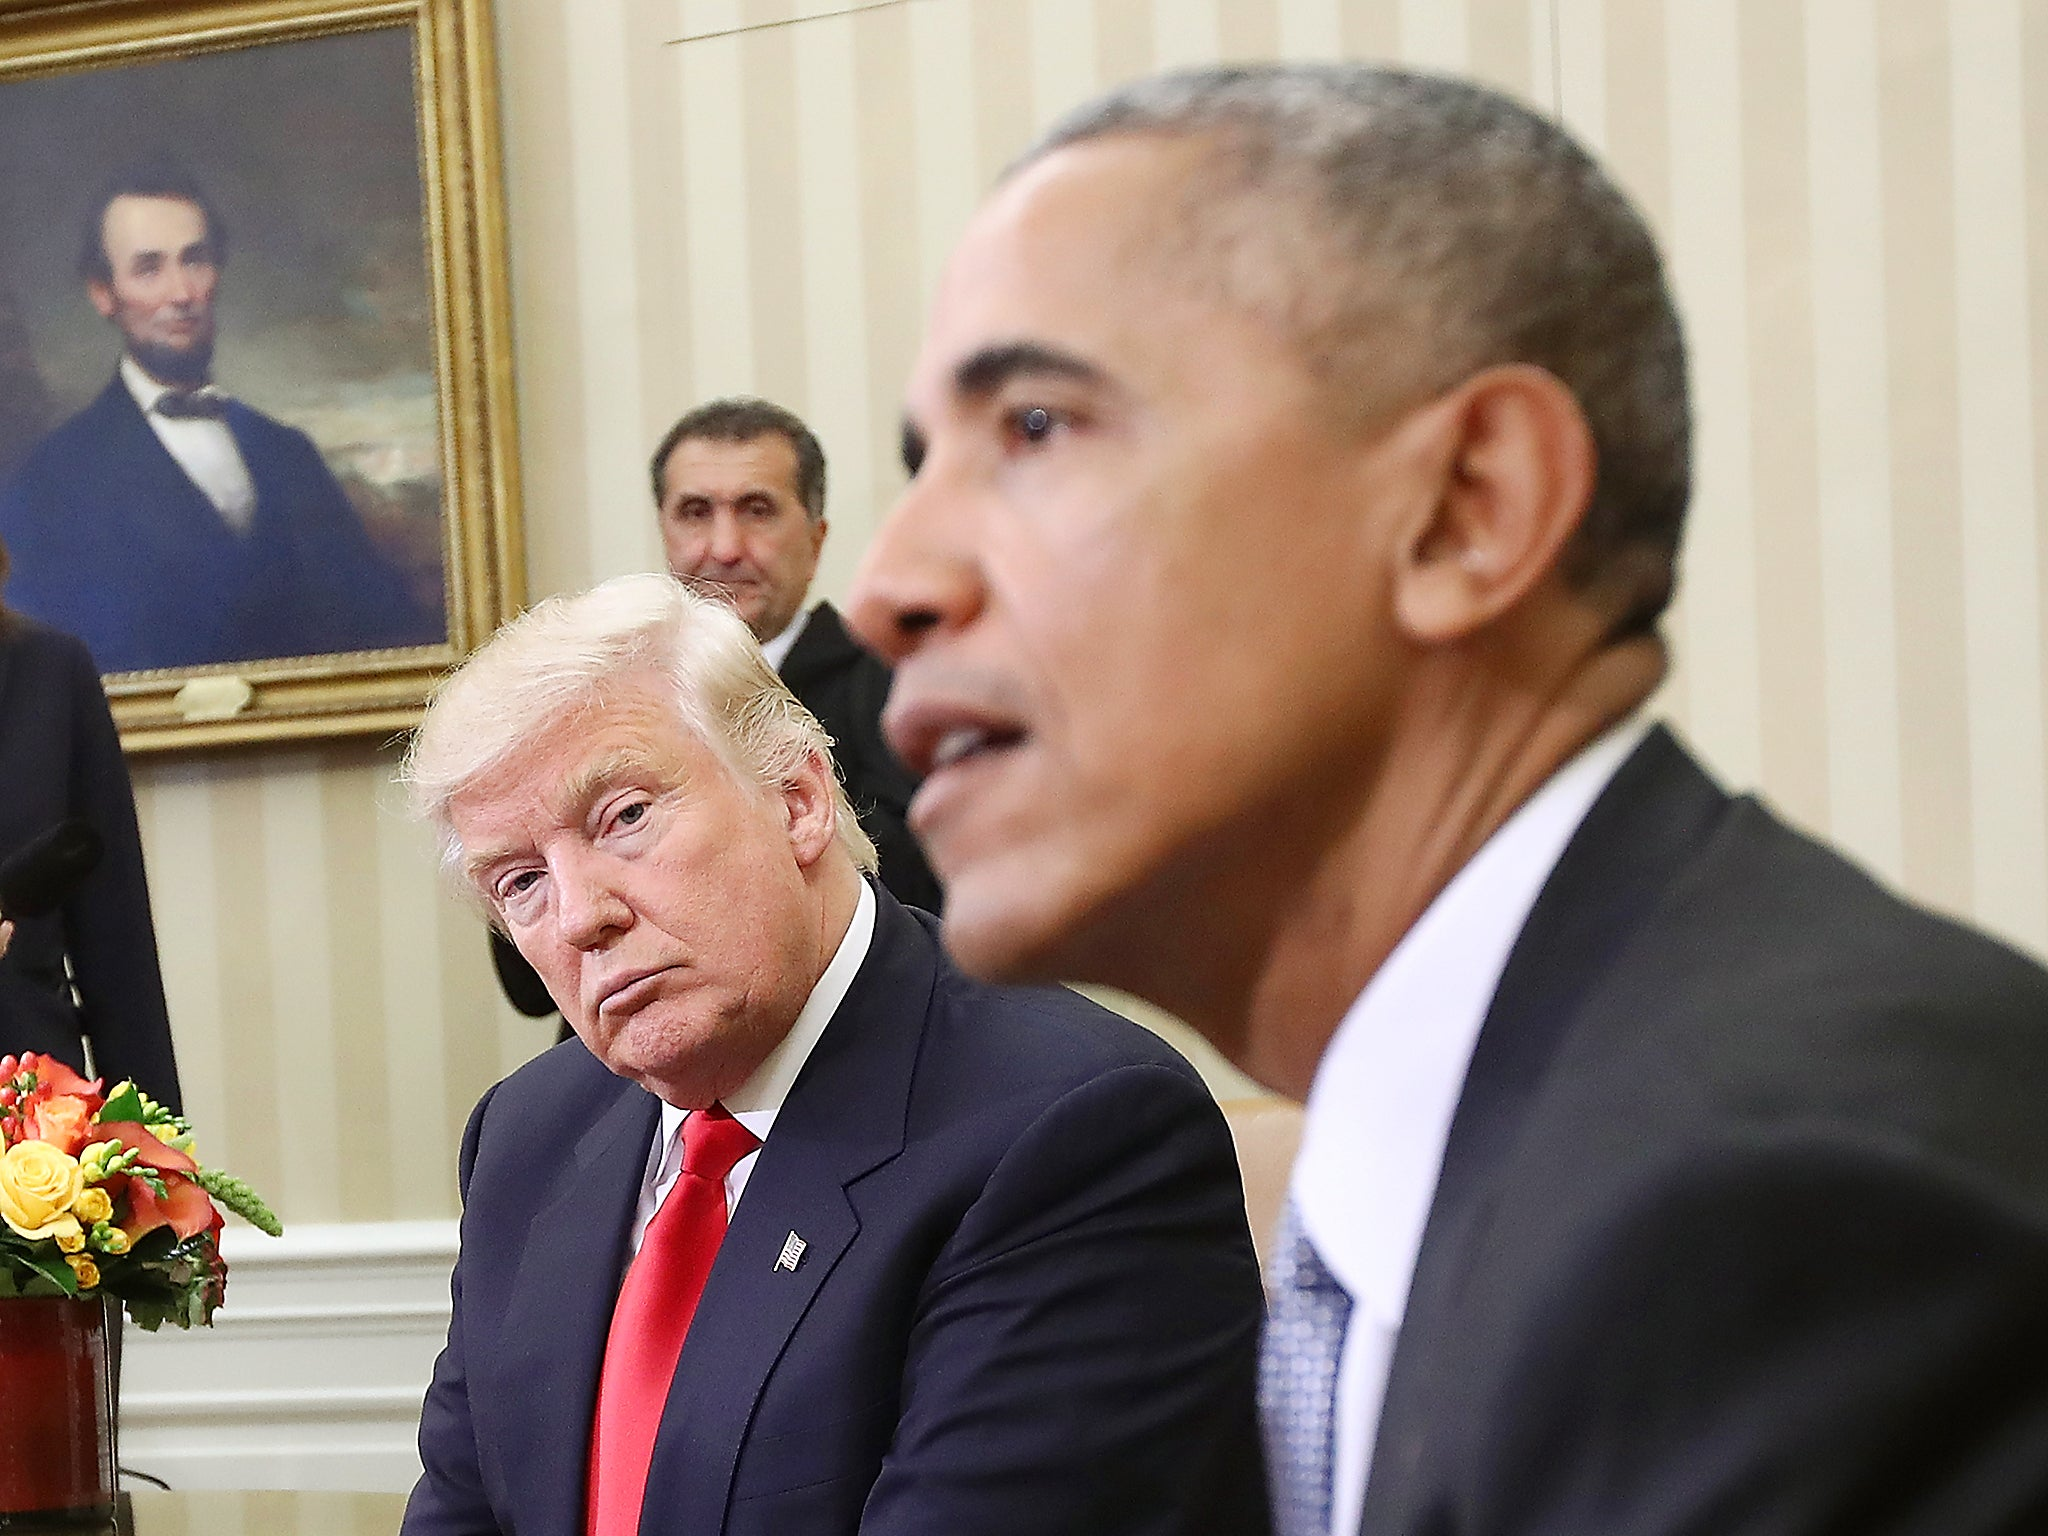 Trump 'isn't fit to clean the toilets in the Barack Obama Presidential Library', says USA Today in searing editorial